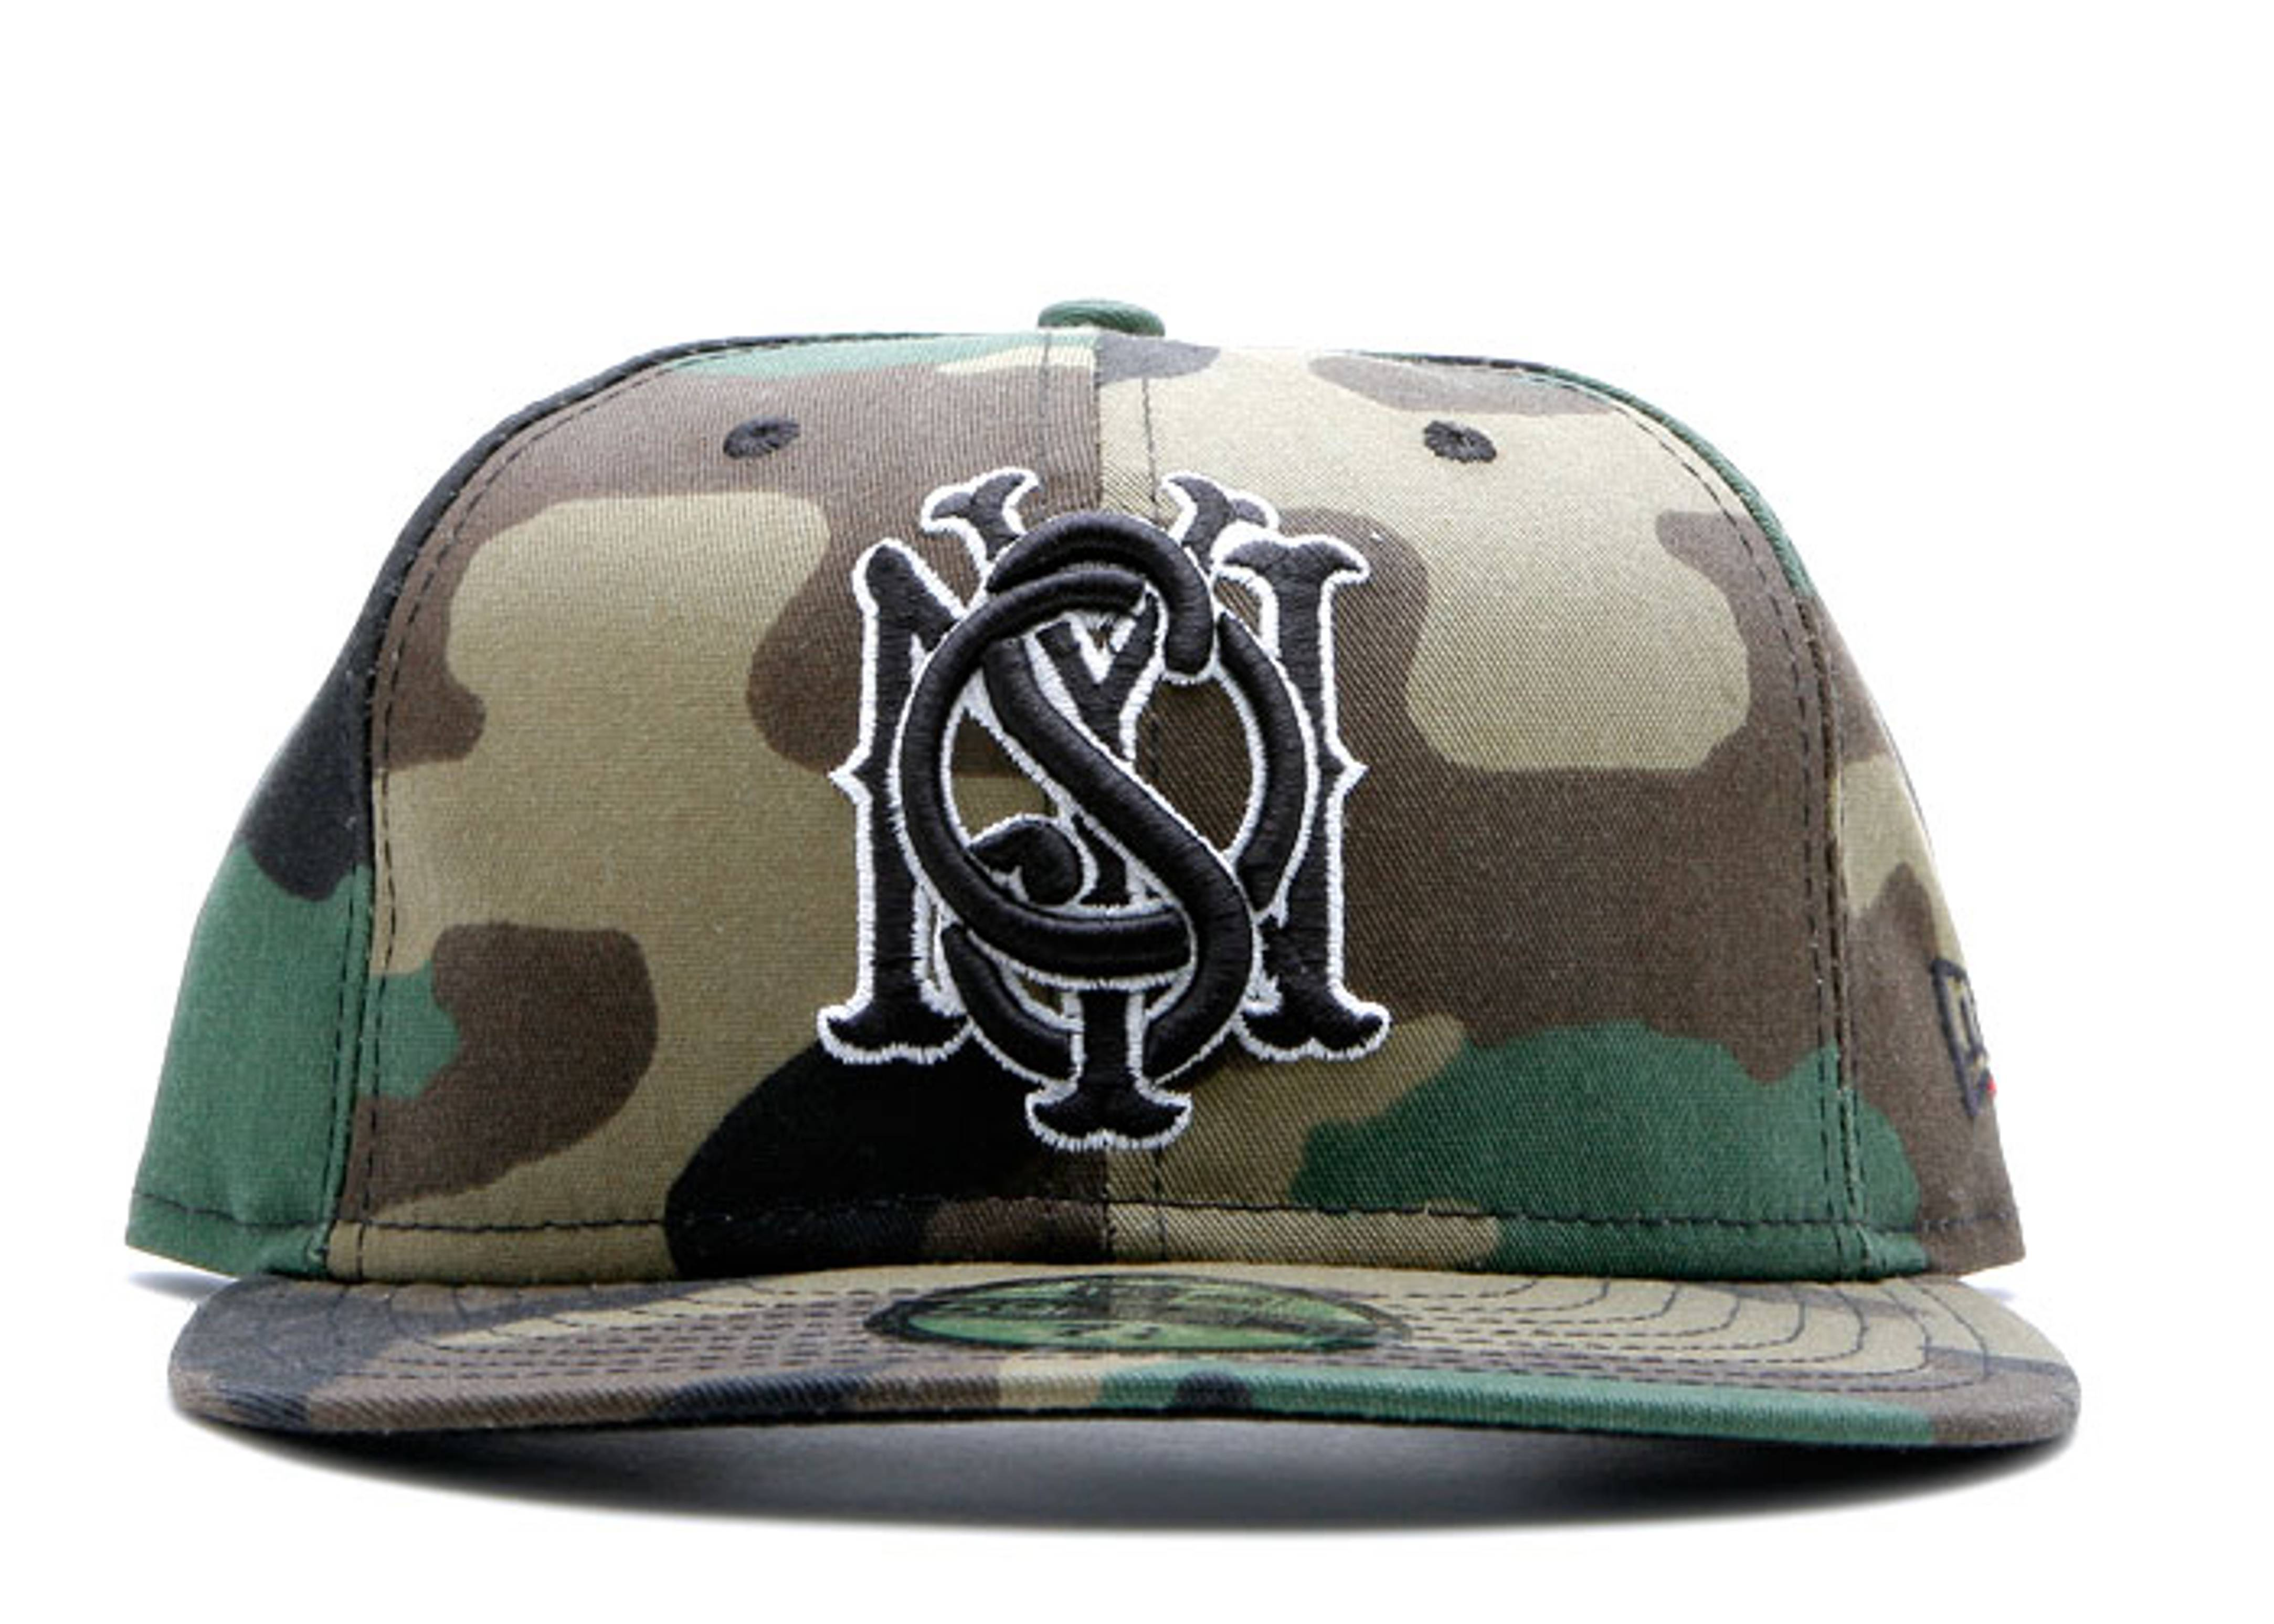 new era fitted